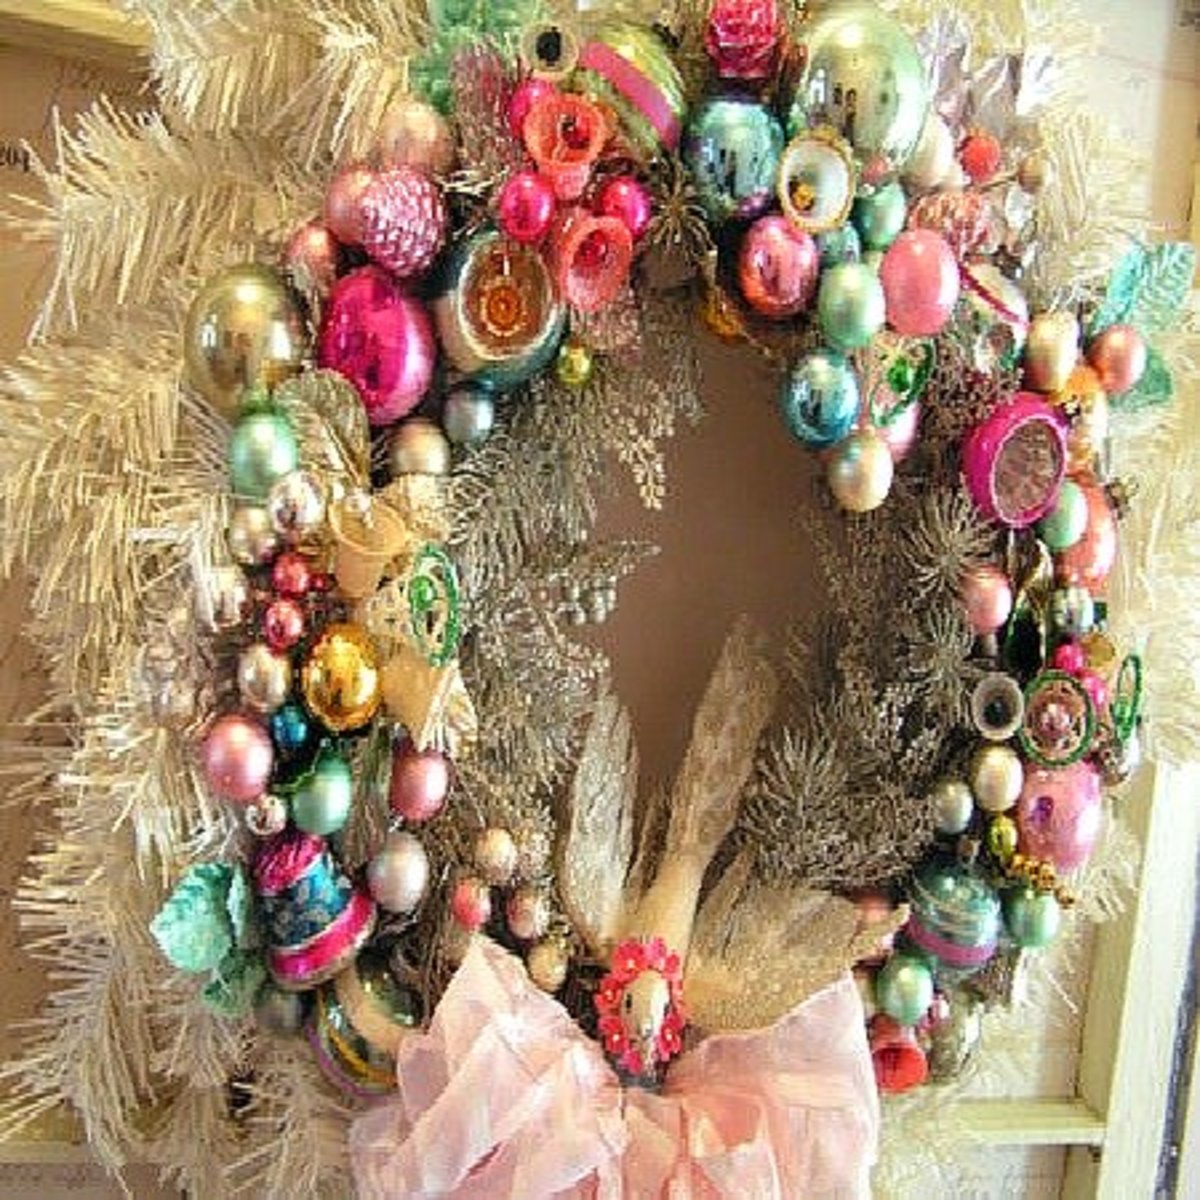 Image #6 - Vintage Recycle Glass Christmas Ornament Wreath